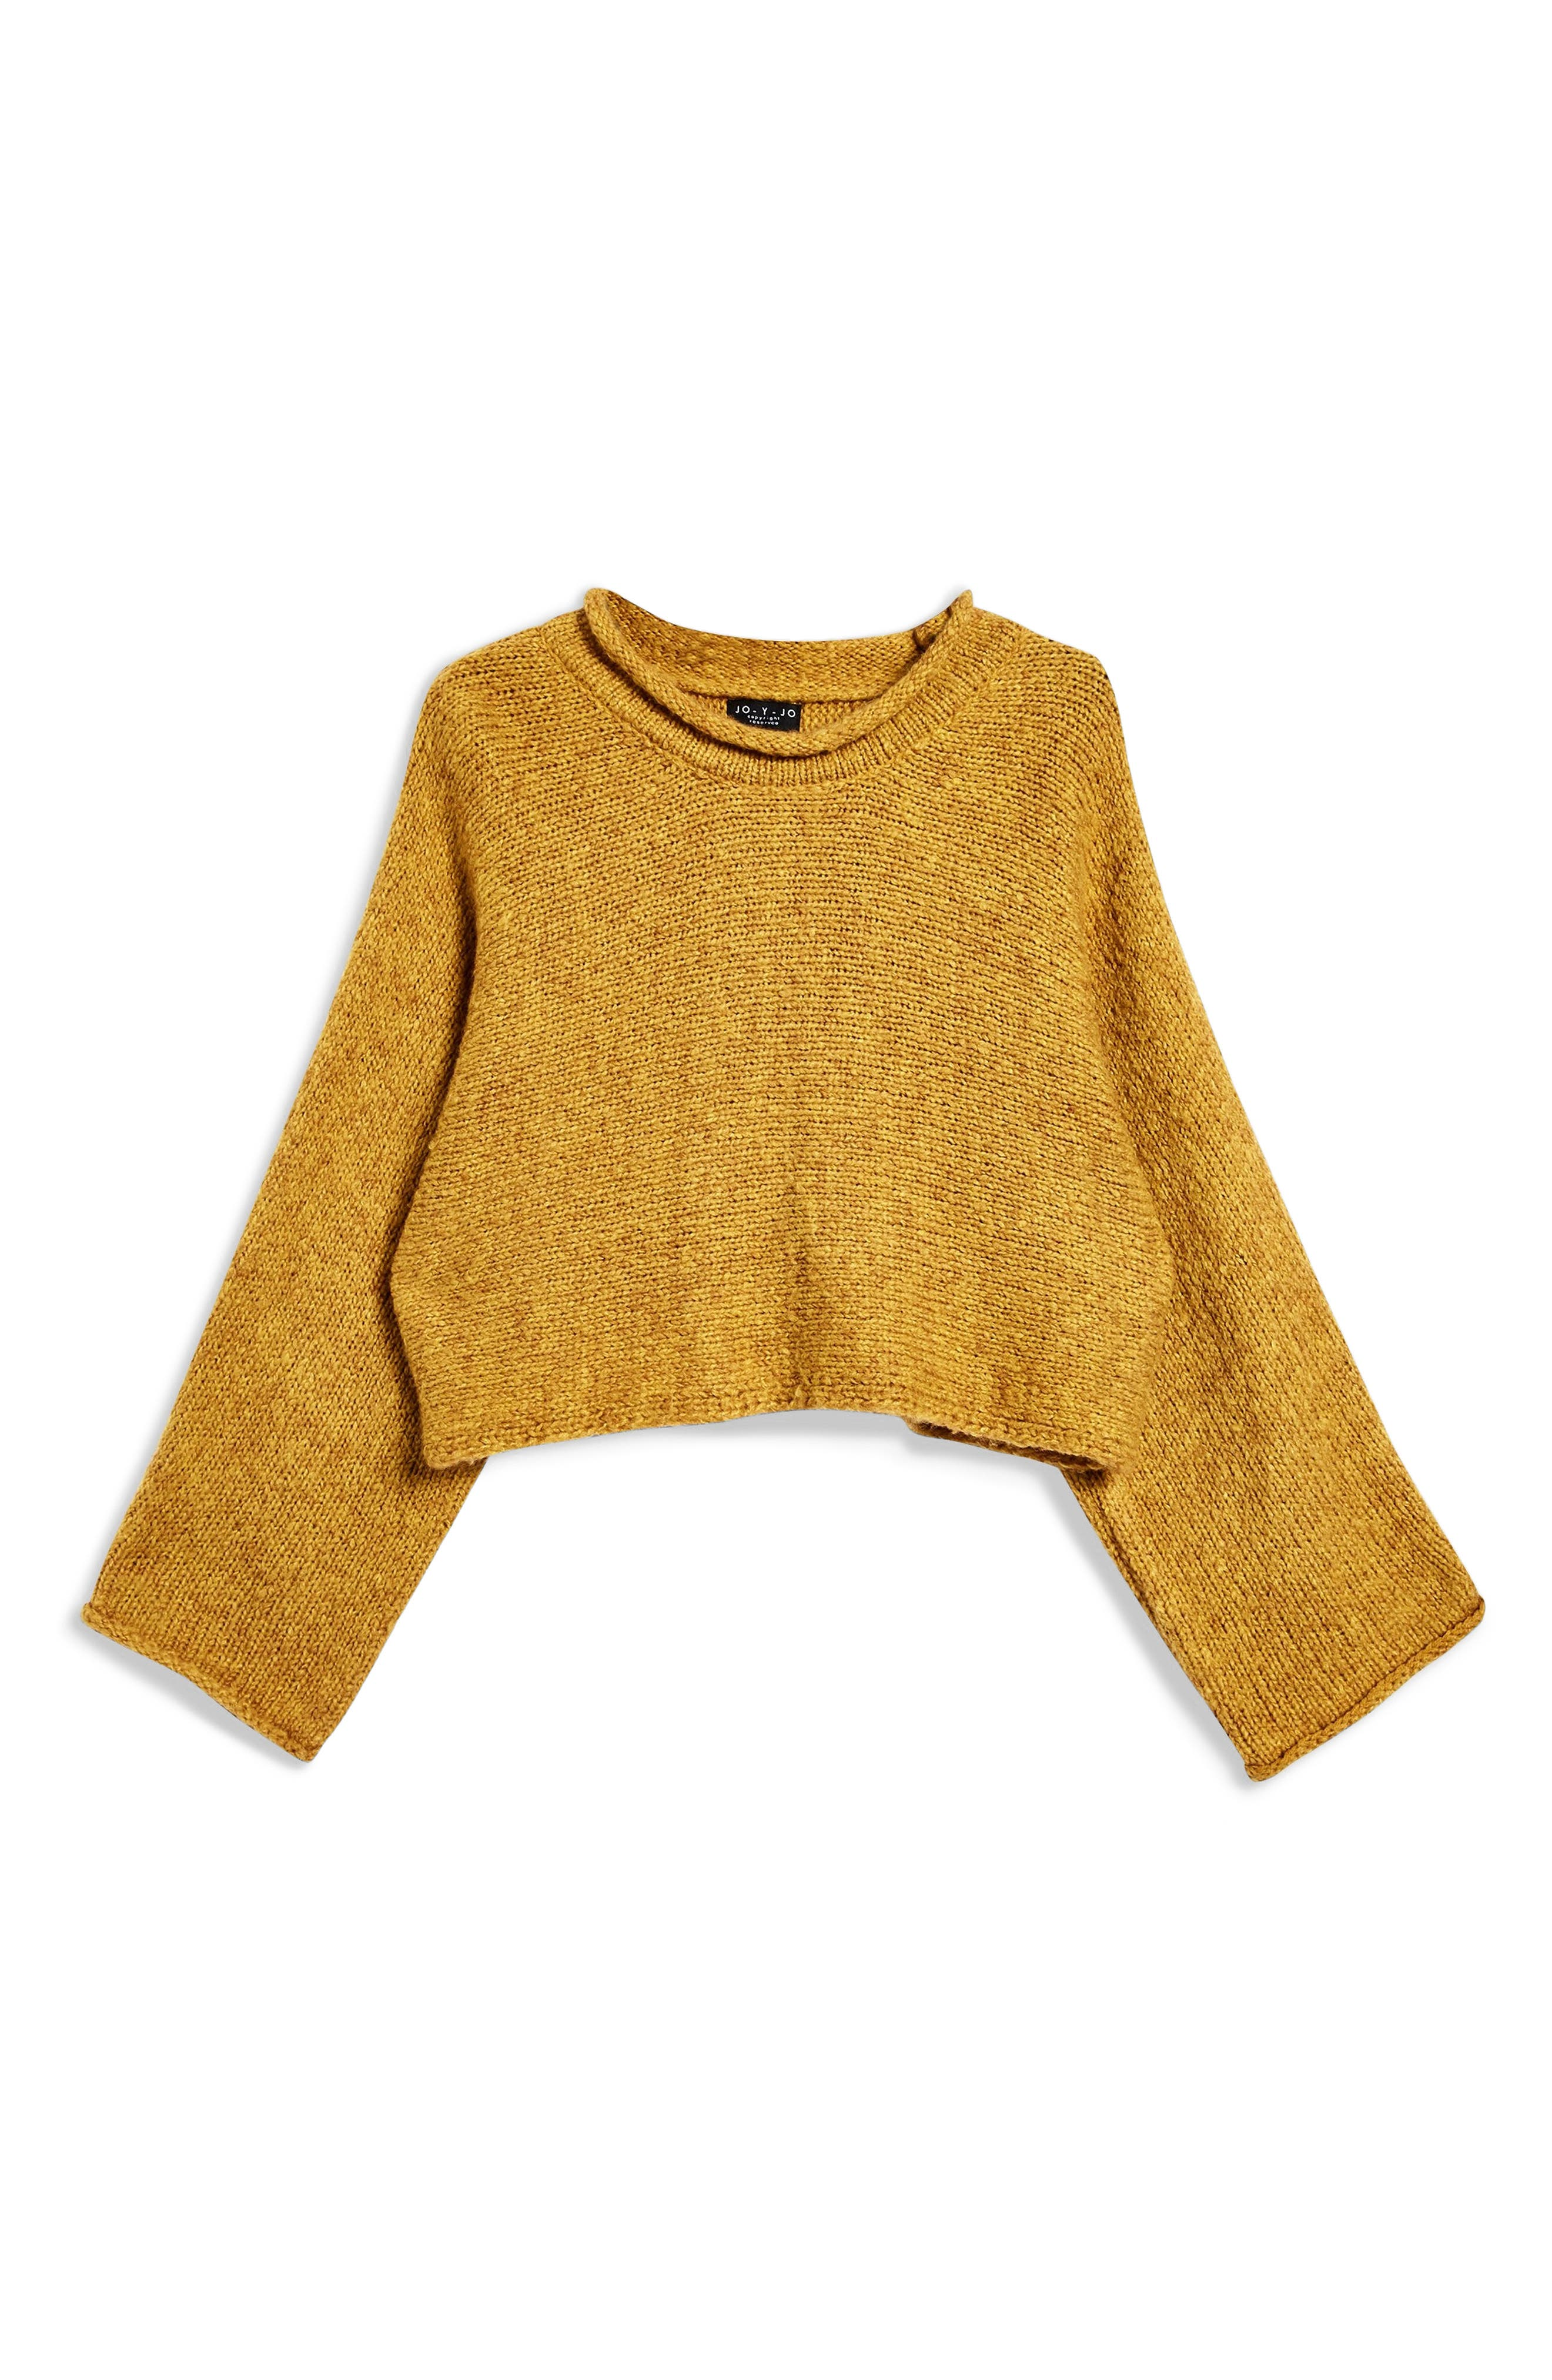 Punk Roll Neck Crop Sweater,                             Alternate thumbnail 4, color,                             MUSTARD